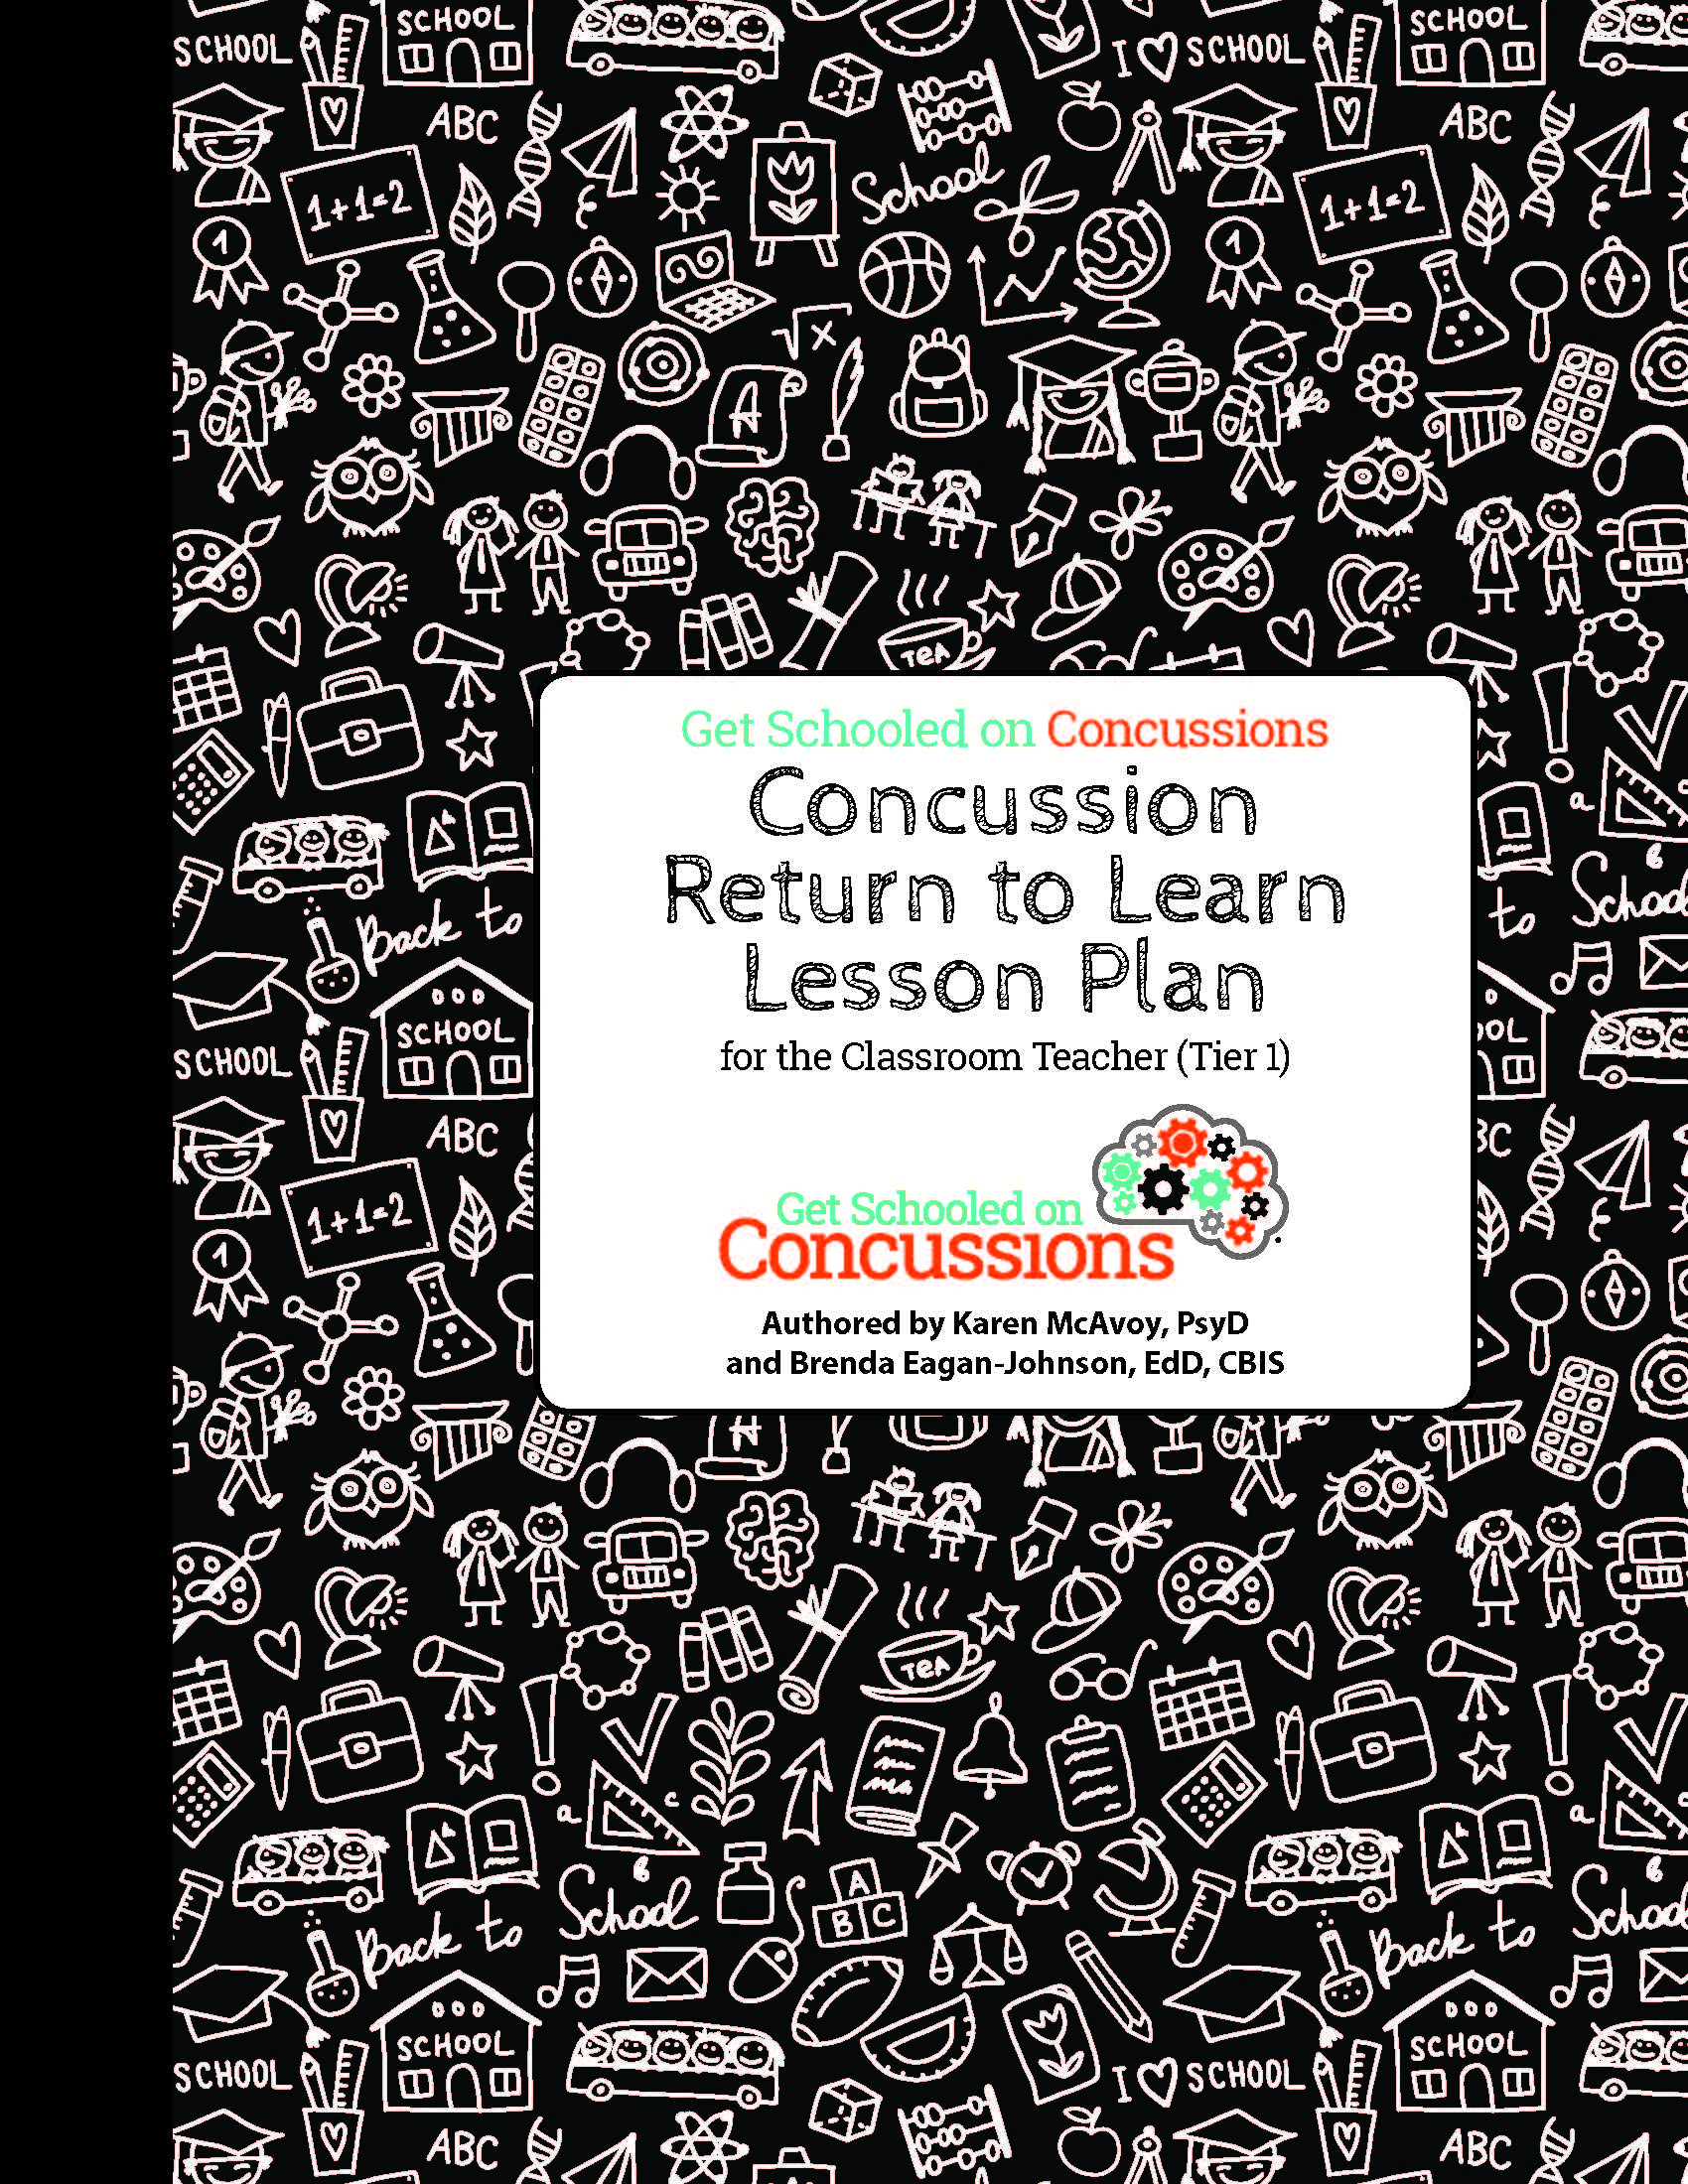 Concussion Return to Learn Lesson Plan